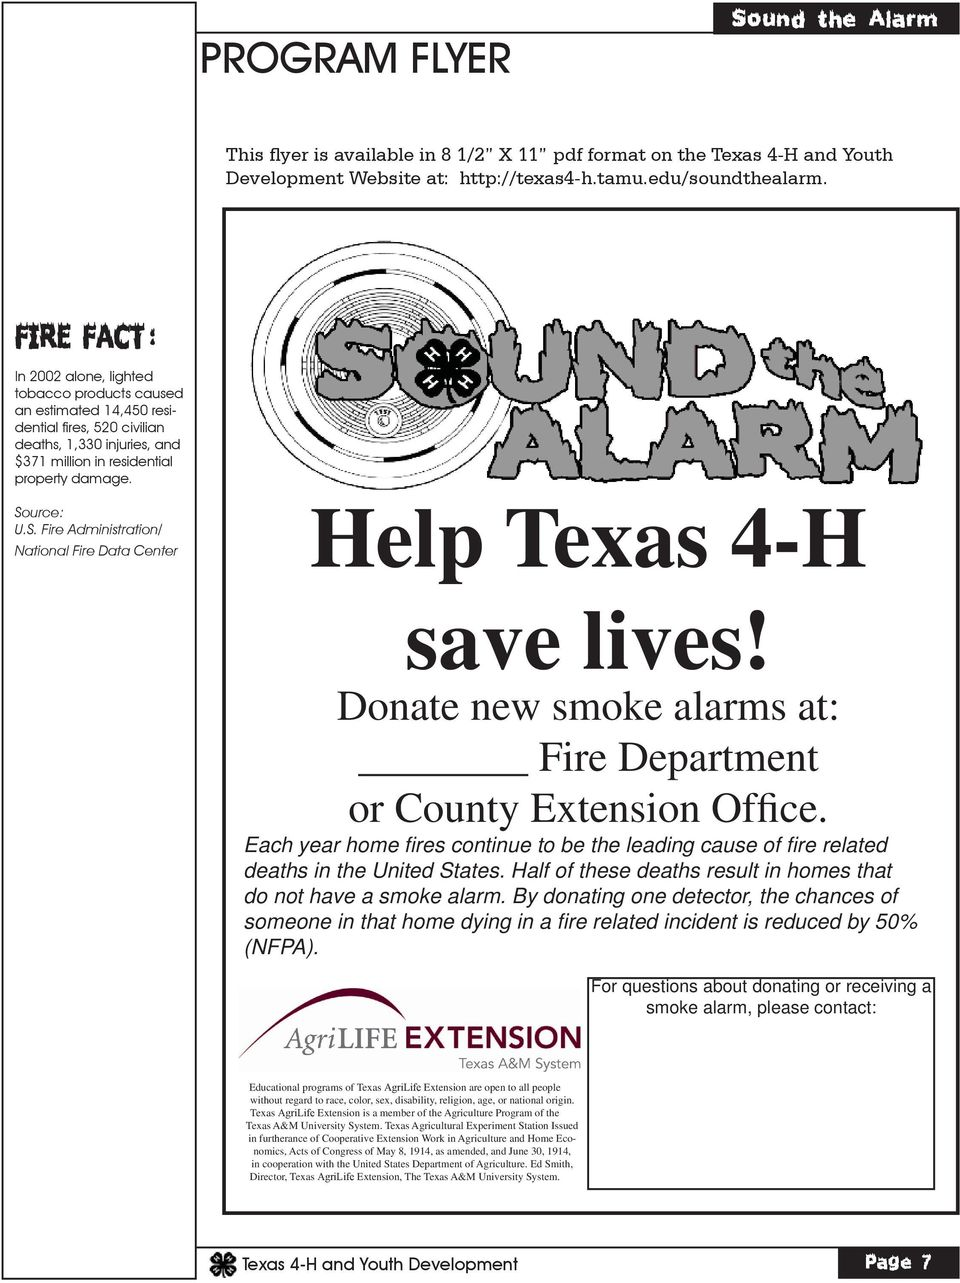 / National Fire Data Center Help Texas 4-H save lives! Donate new smoke alarms at: Fire Department or County Extension Office.